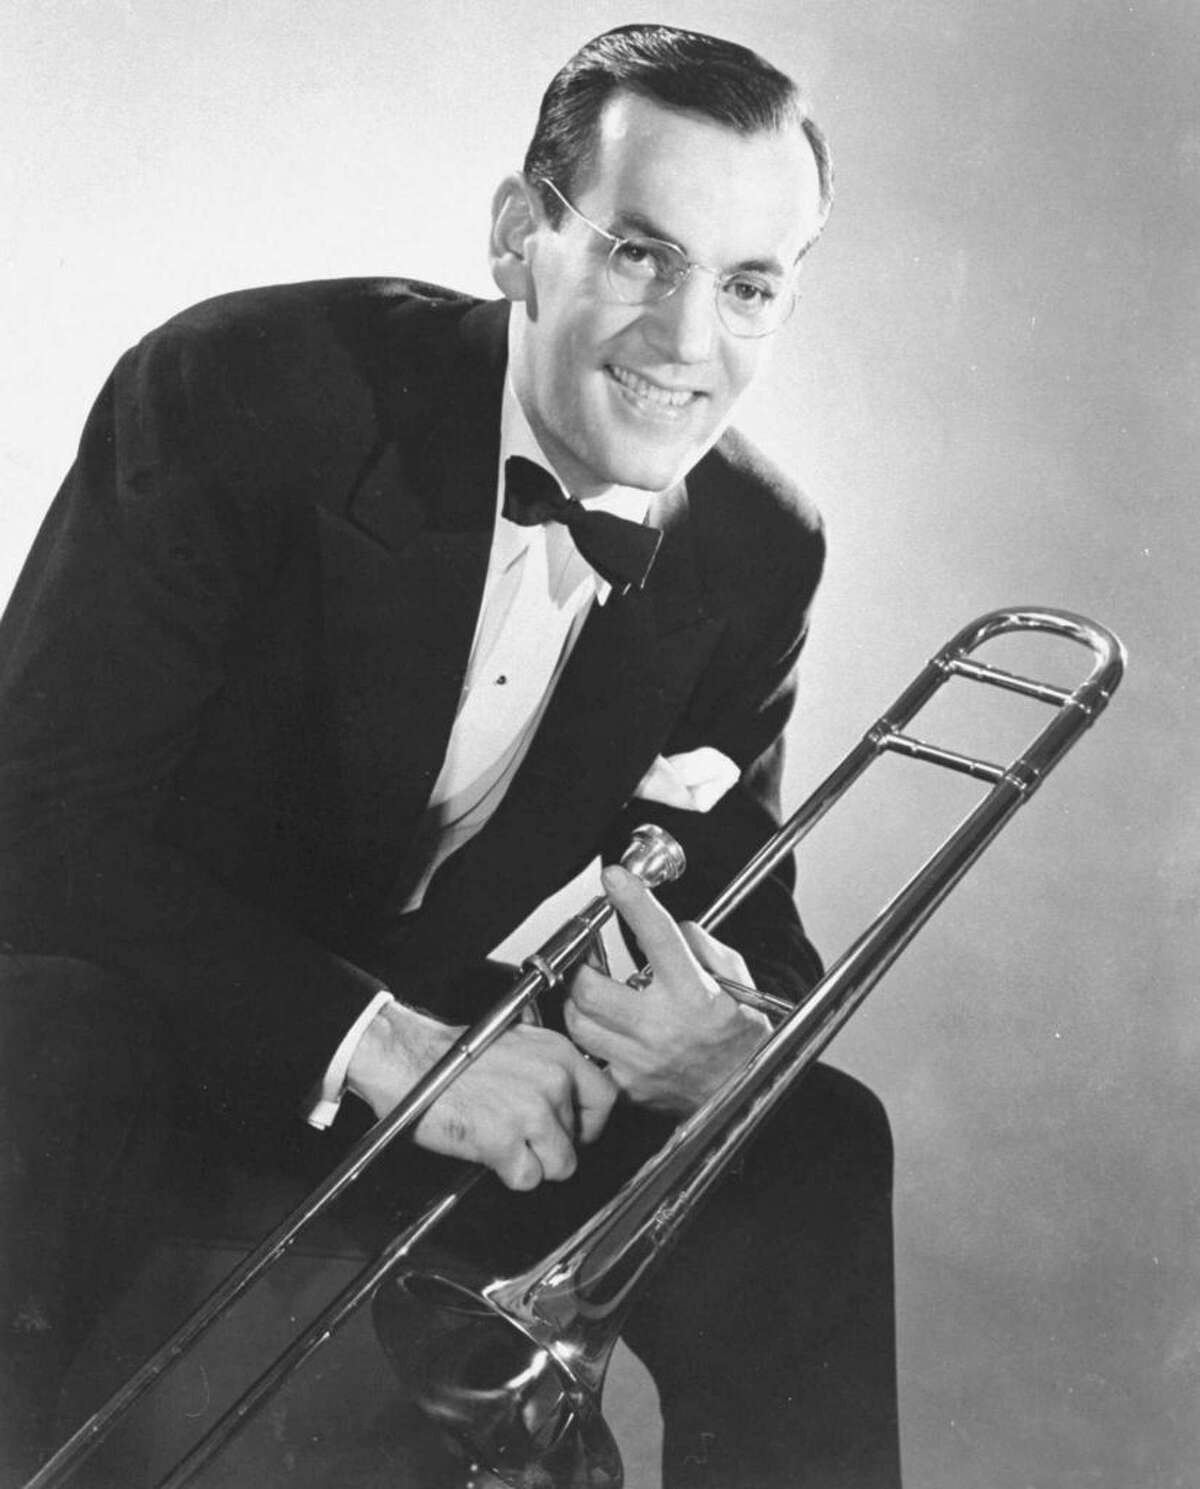 Who Died Unexpectedly That Year That same year, Glenn Miller, famous bandleader, was presumed dead after his plane to France disappeared. To this day, his death remains a mystery.